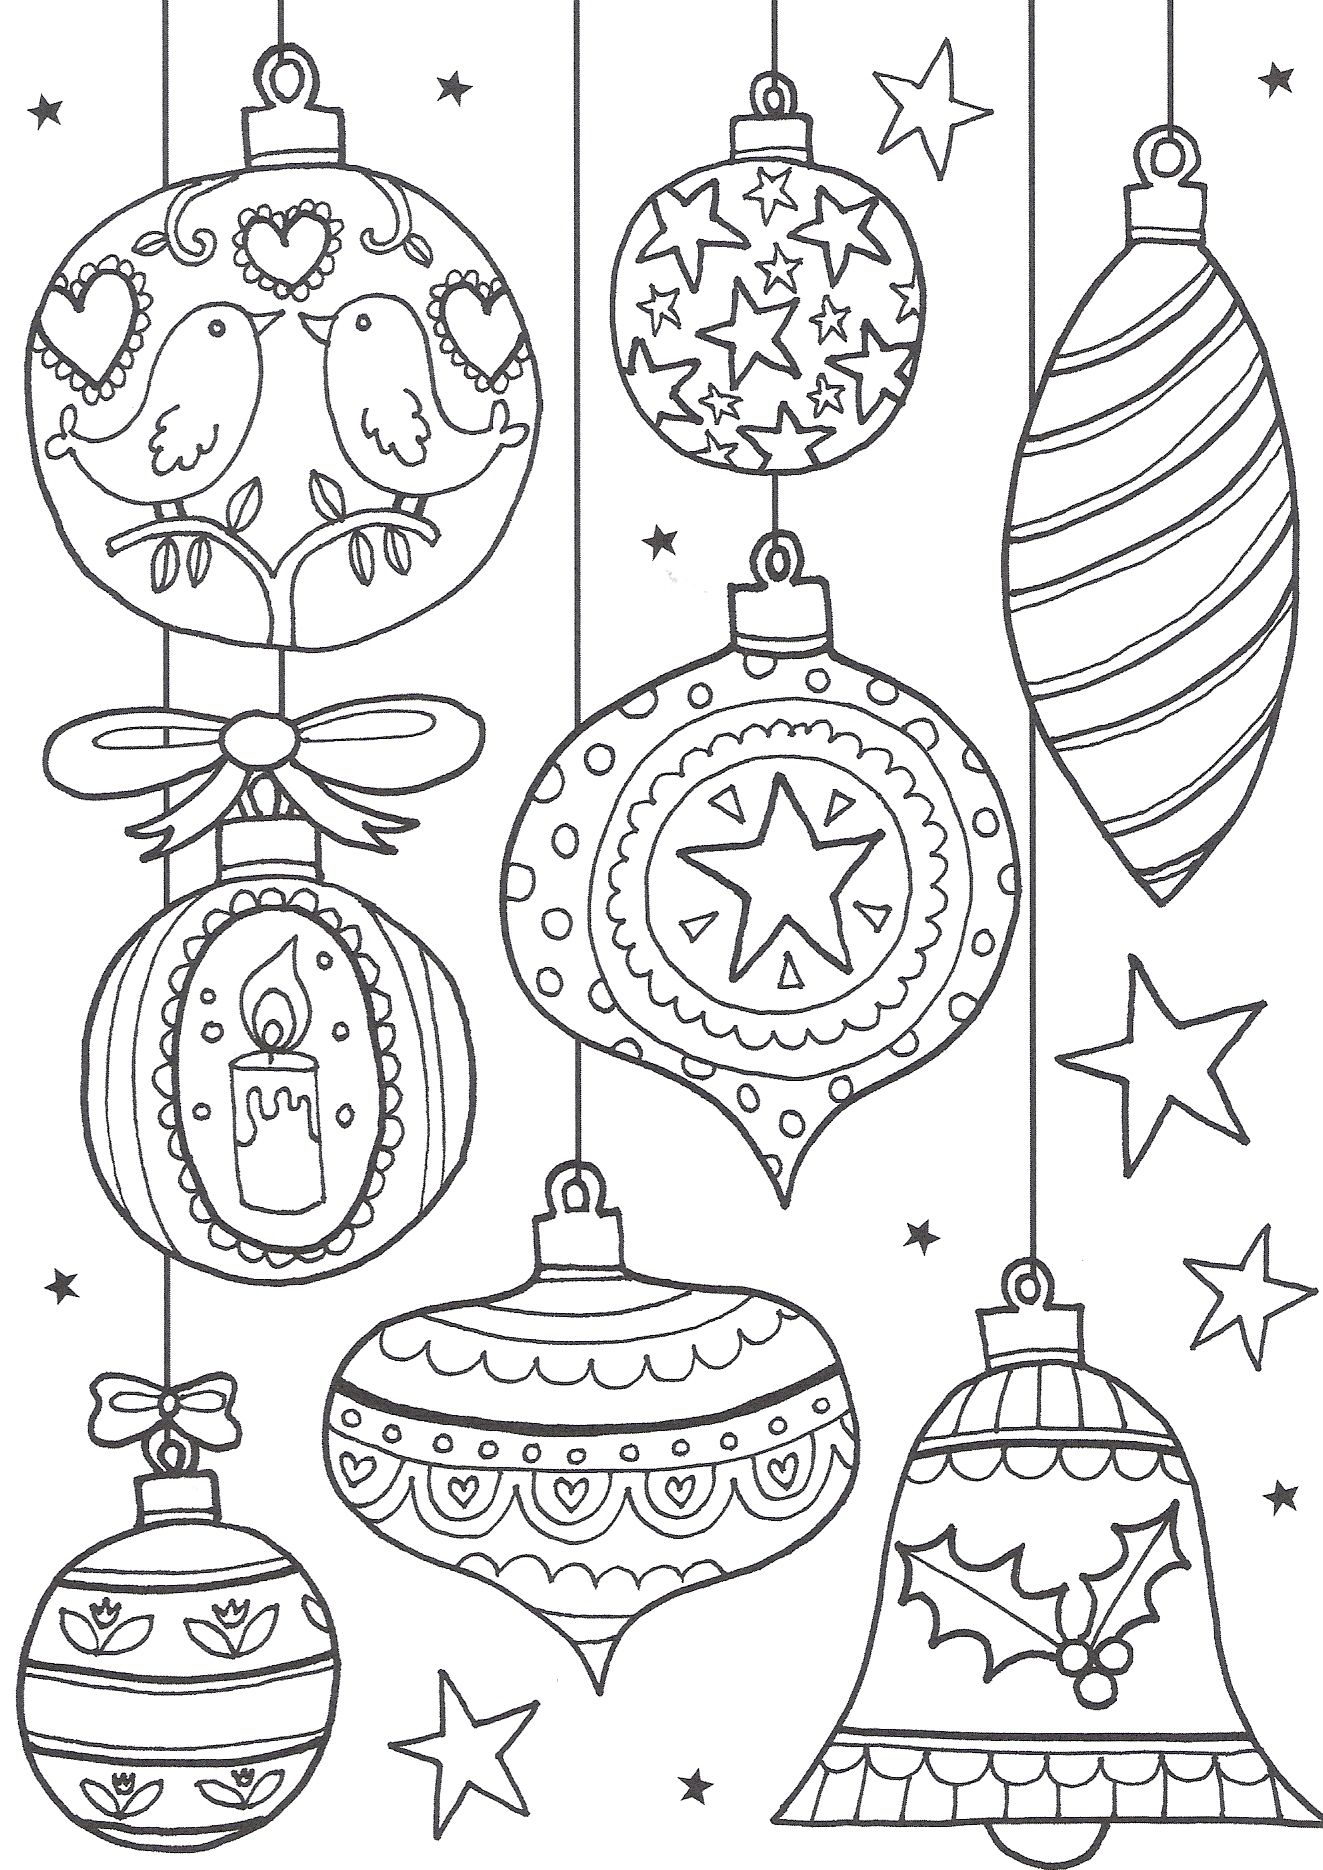 Christmas Images Coloring Pages With Free Colouring For Adults The Ultimate Roundup